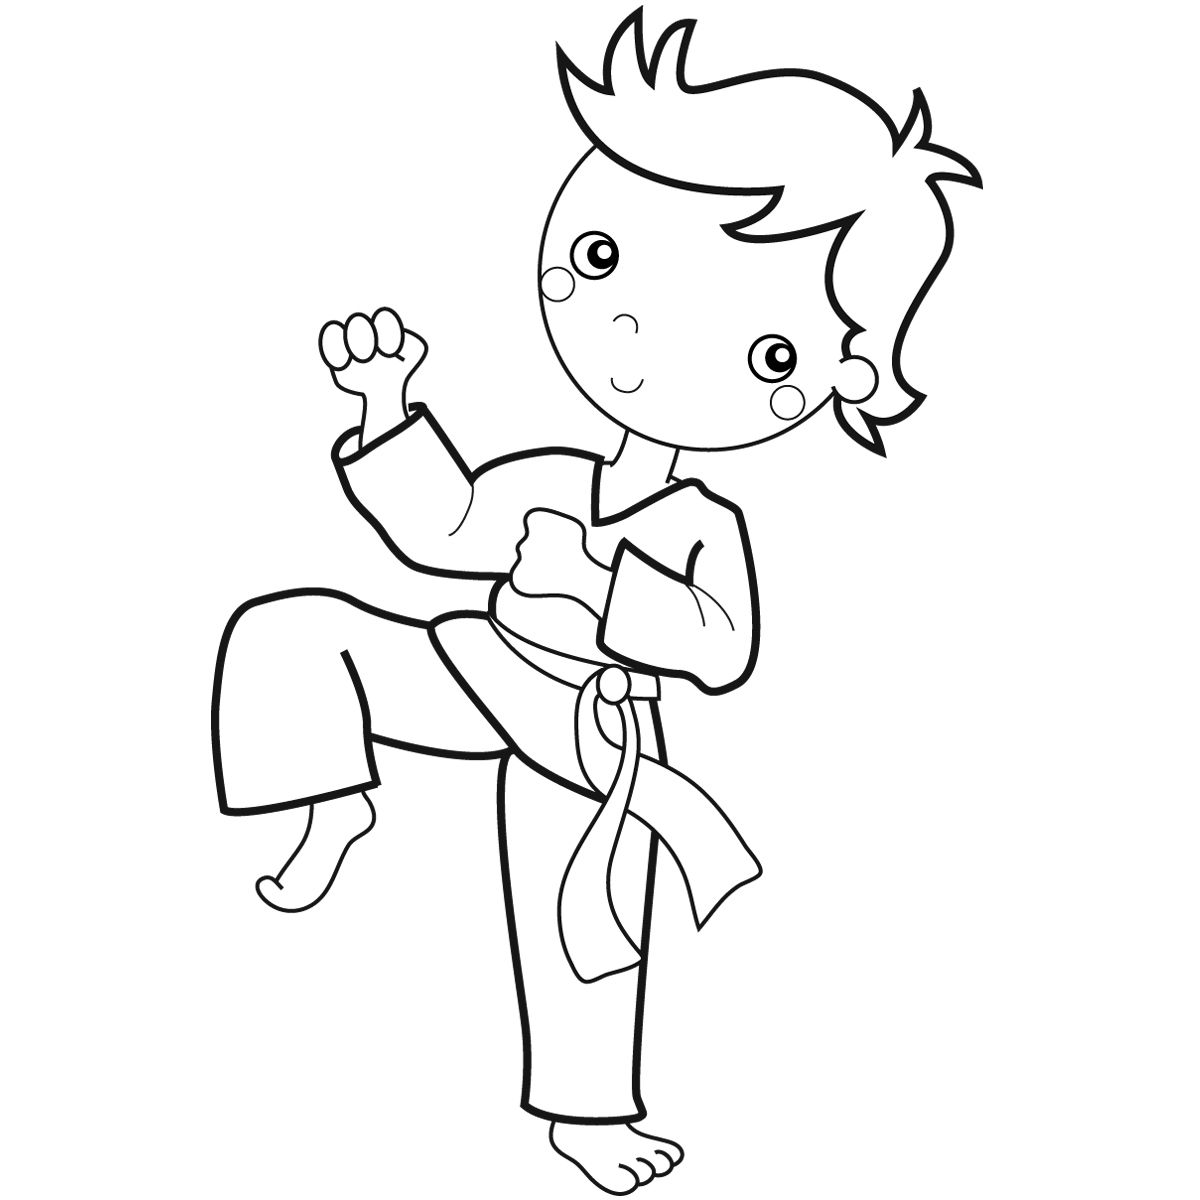 Marisa Straccia Karate Kids Embroidery Designs Coloring Pages Sports Coloring Pages Coloring Pages For Boys